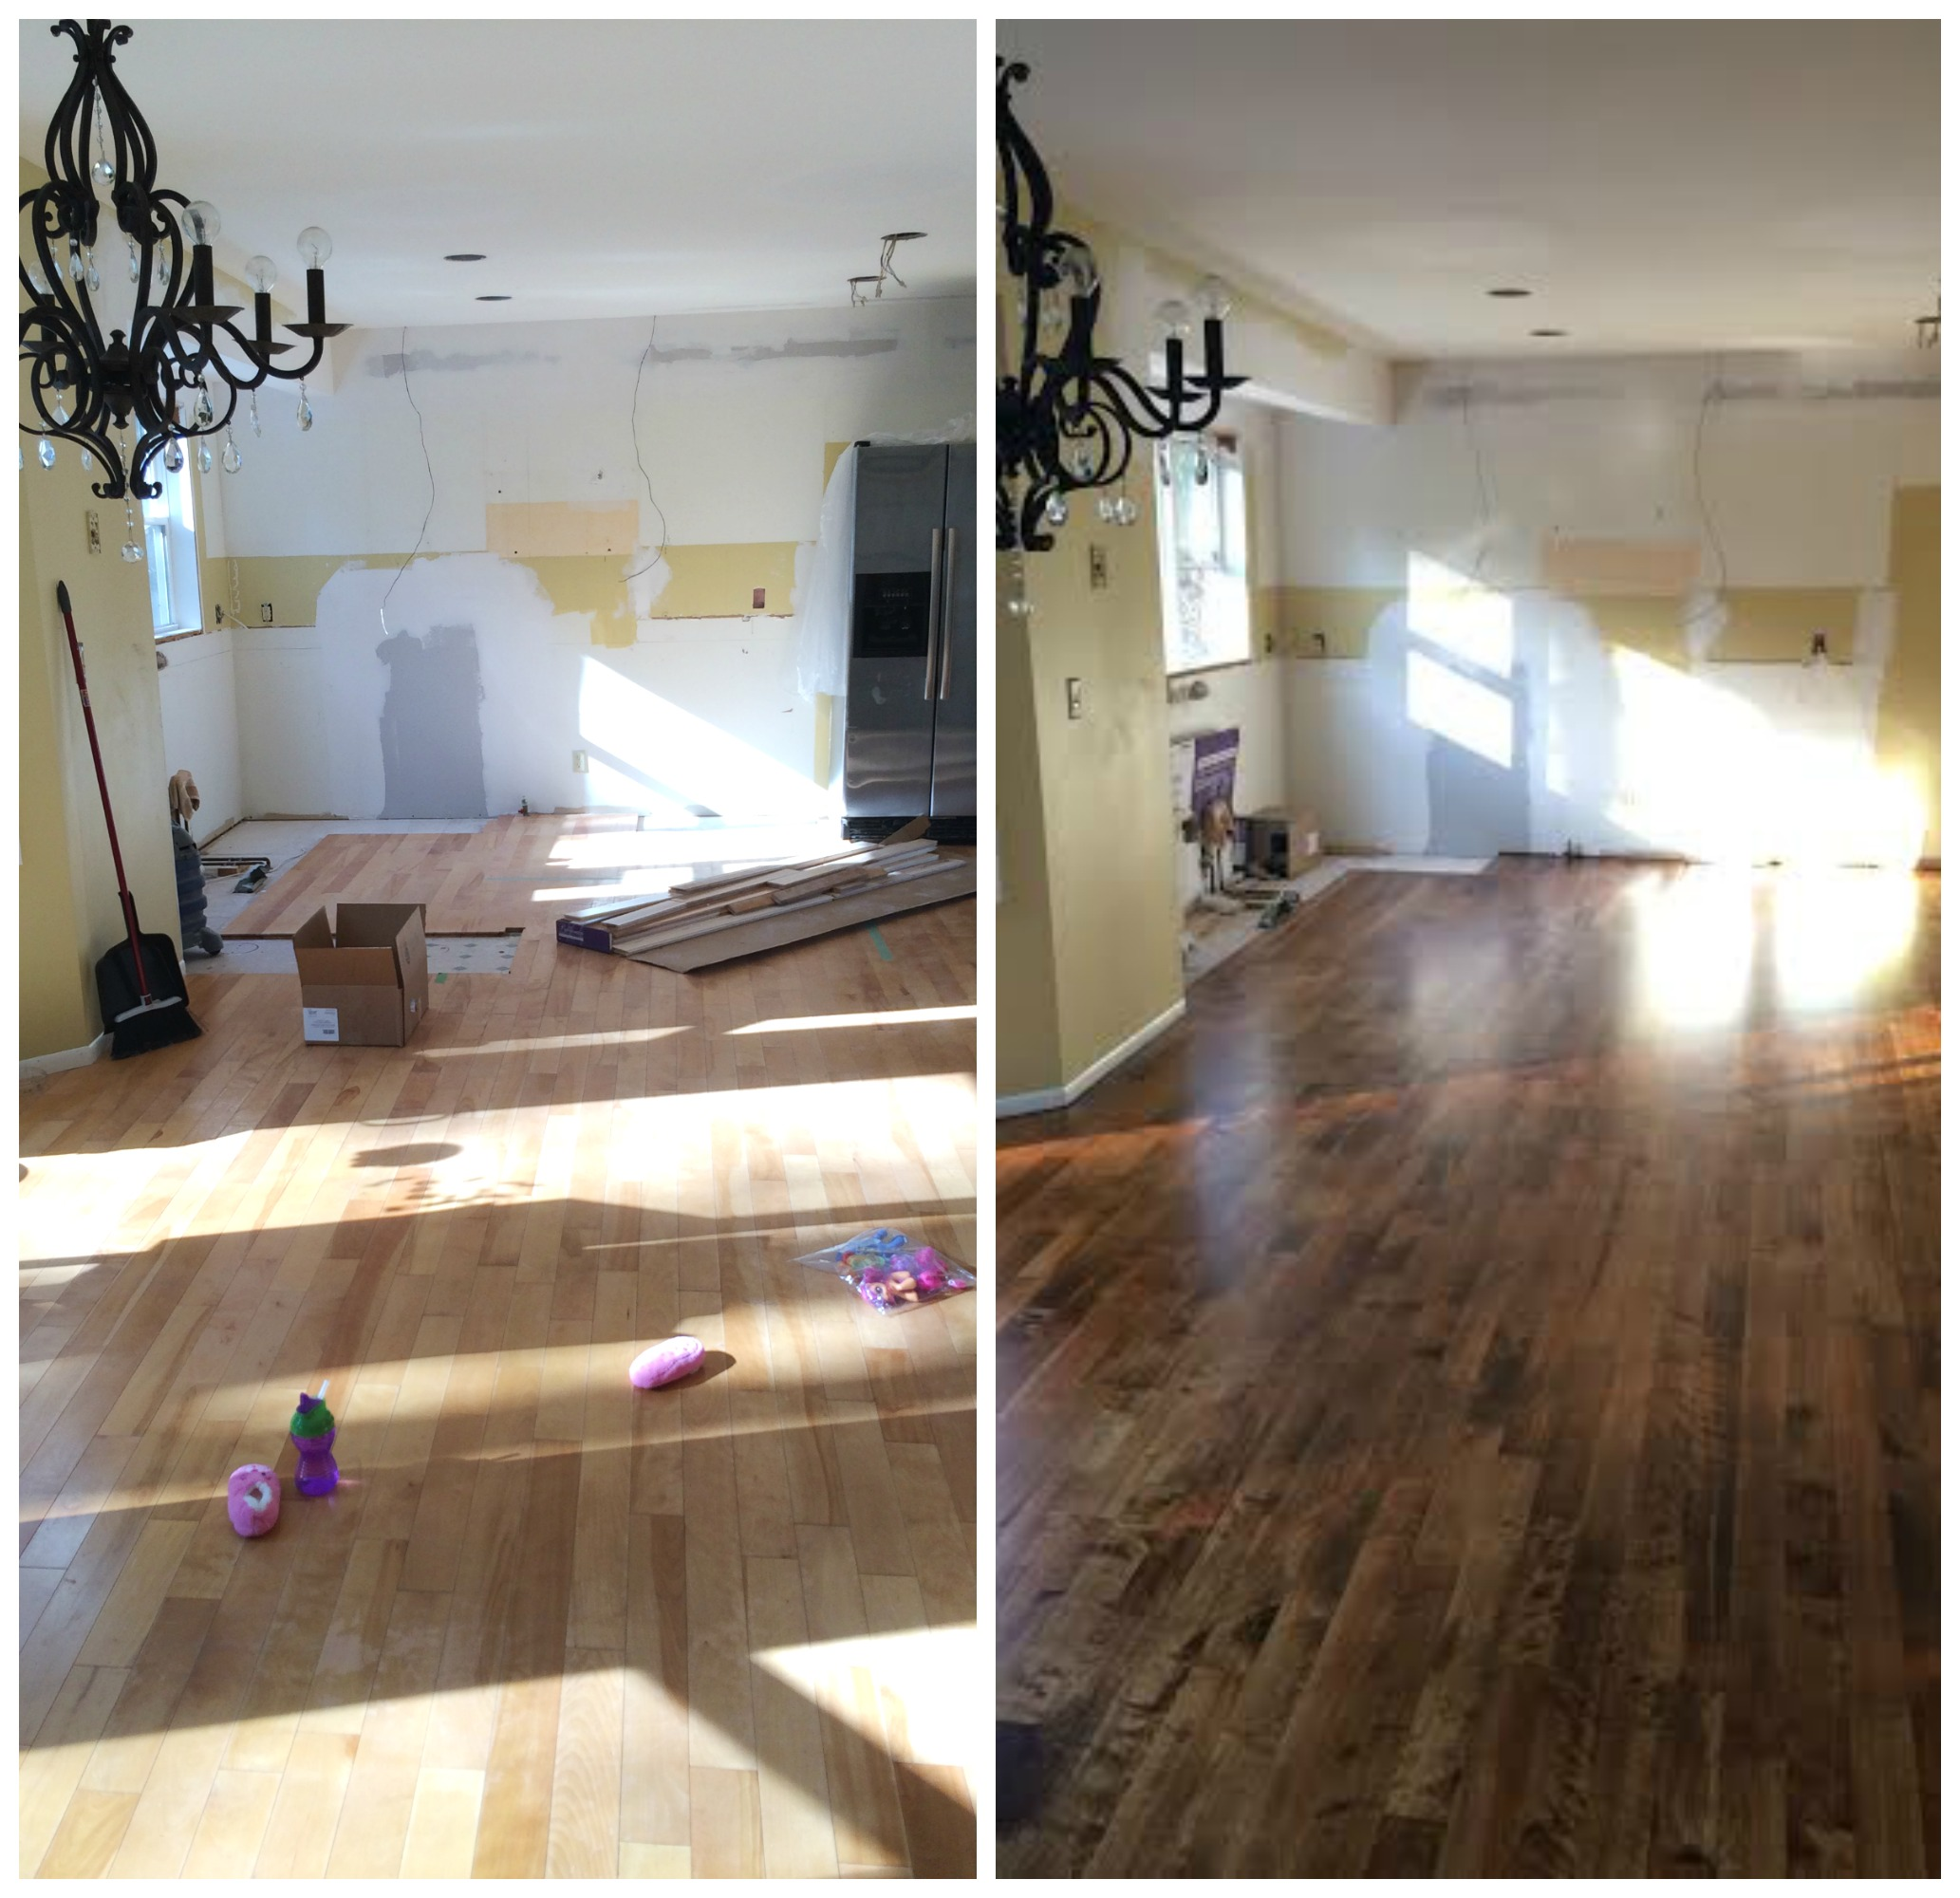 hardwood floors kitchen. Kitchen Renovation: Patch, Repair, And Stain The Hardwood Floors O